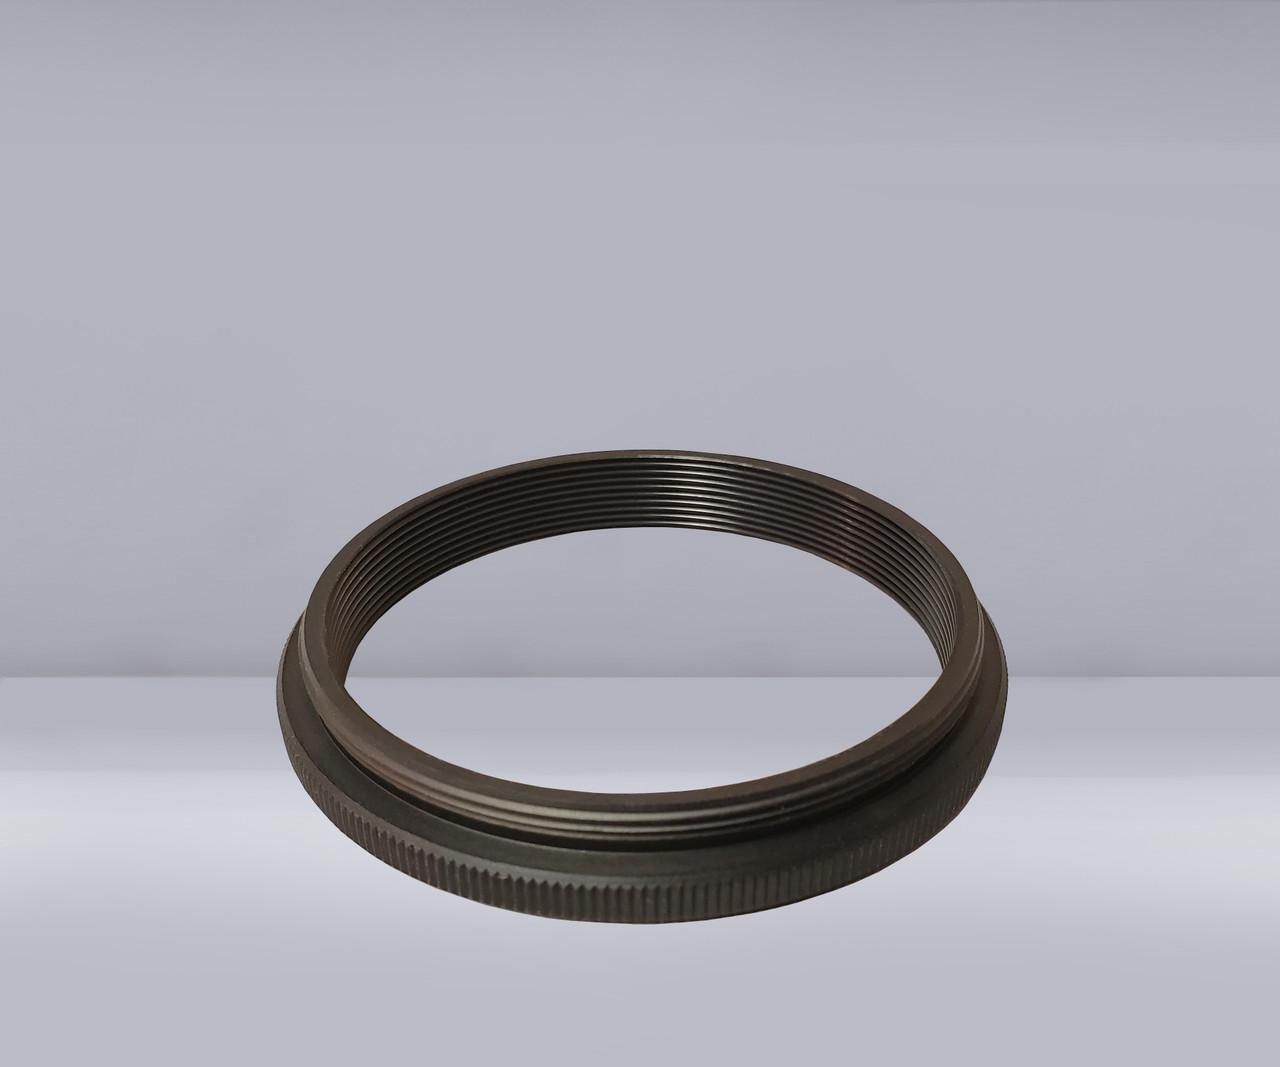 SFA-M68F63-005 Adapter - Male 68mm to Female 63mm